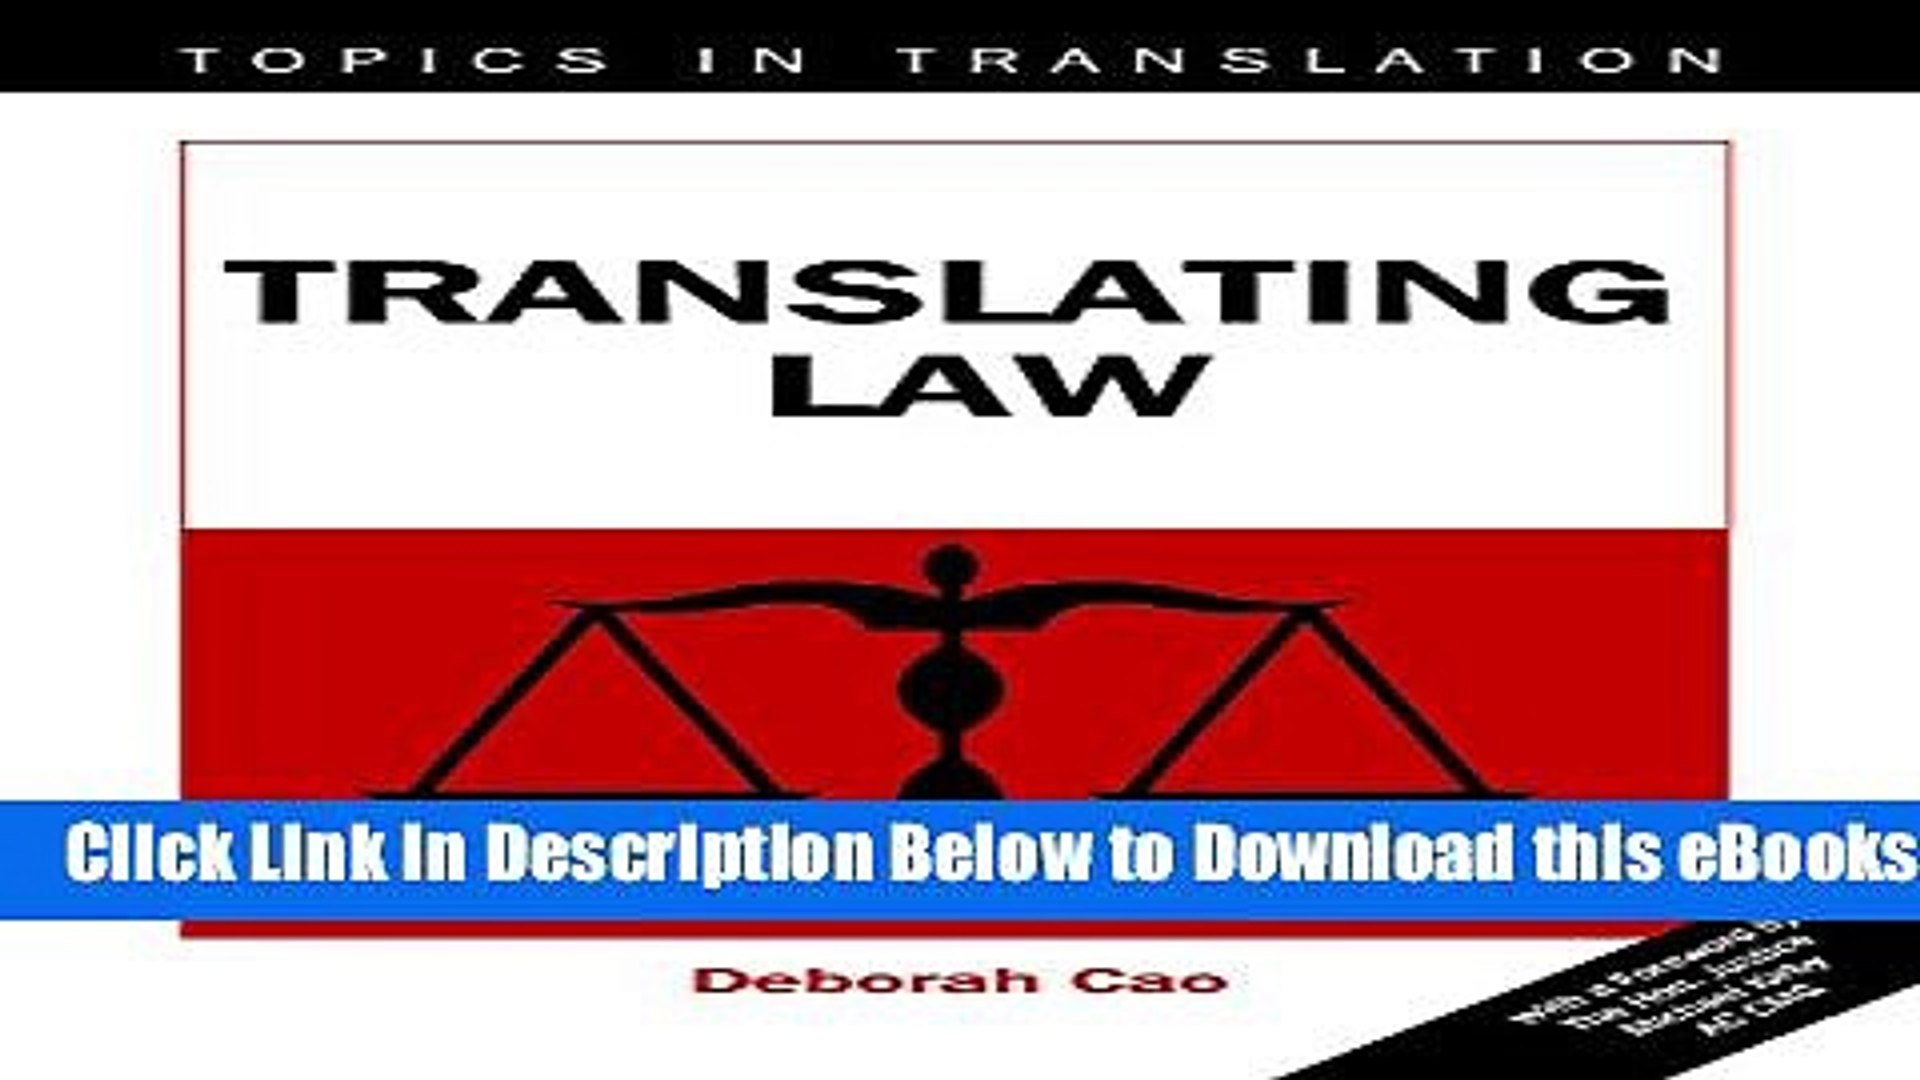 [Reads] Translating Law (Topics in Translation) Free Books